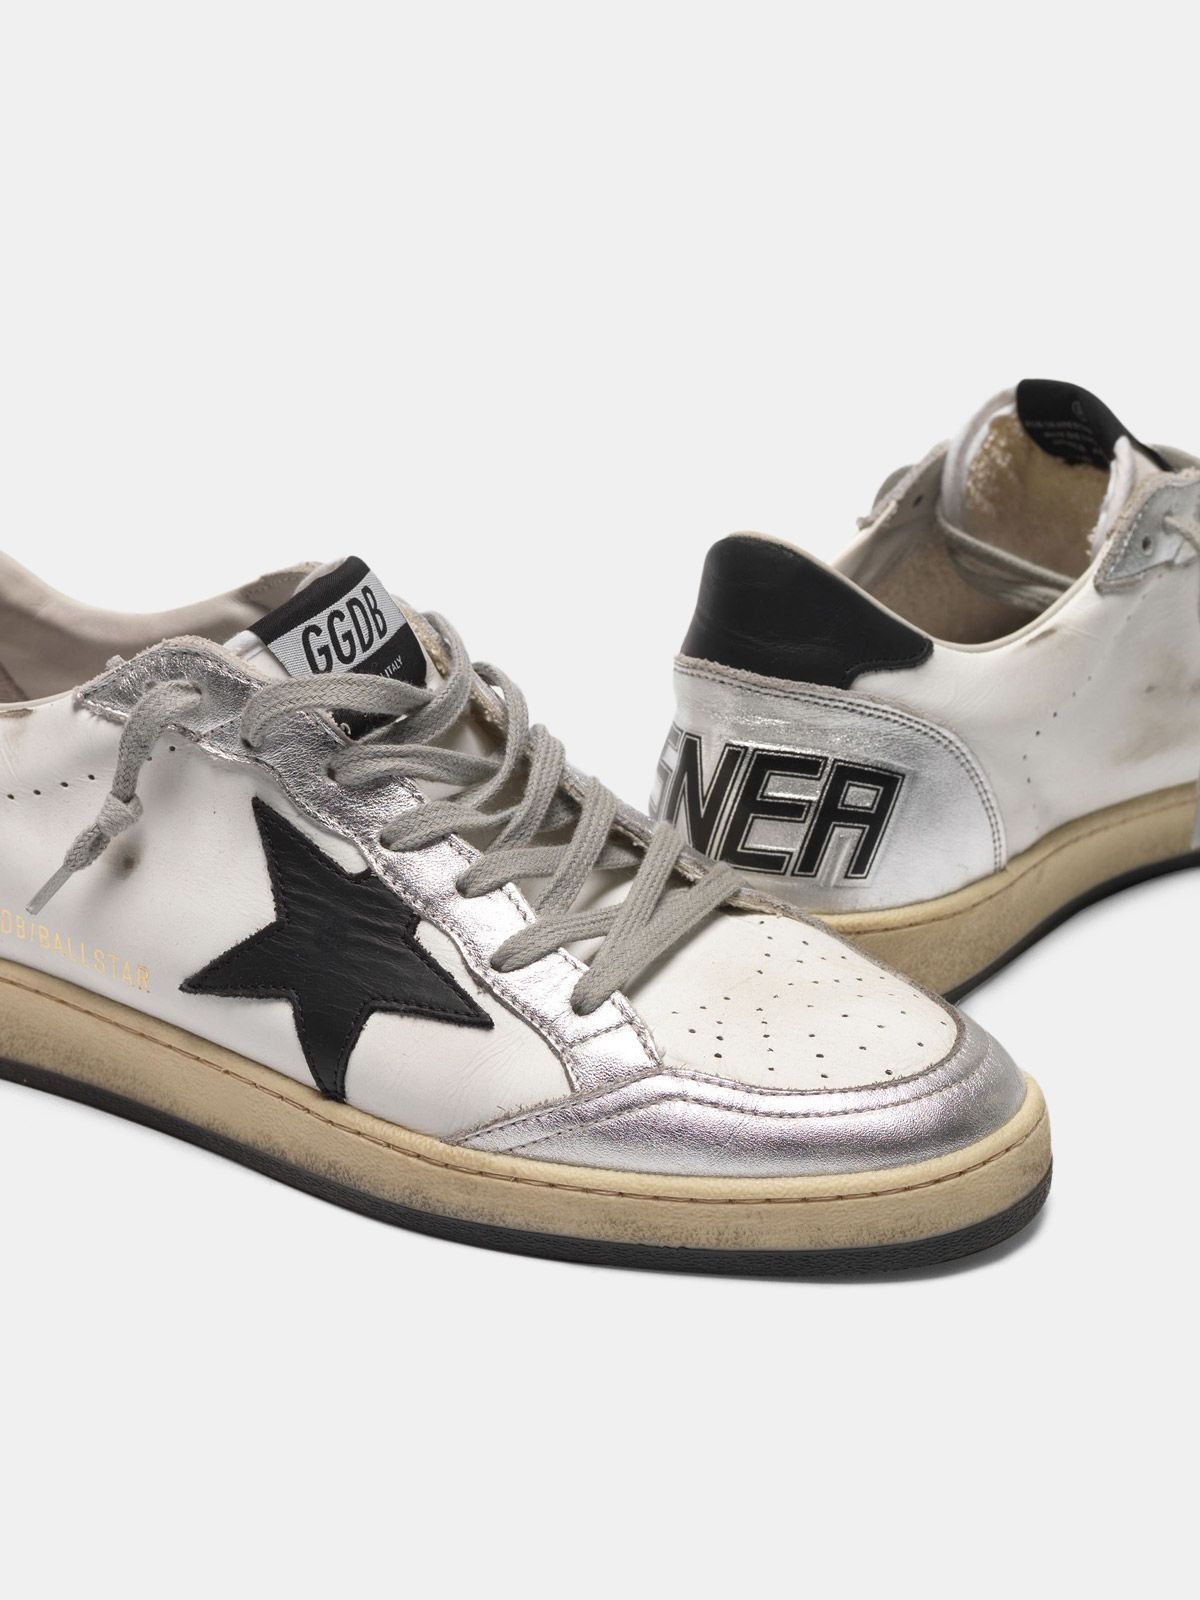 Golden Goose - Leather Ball Star sneakers with metallic inserts and black star in